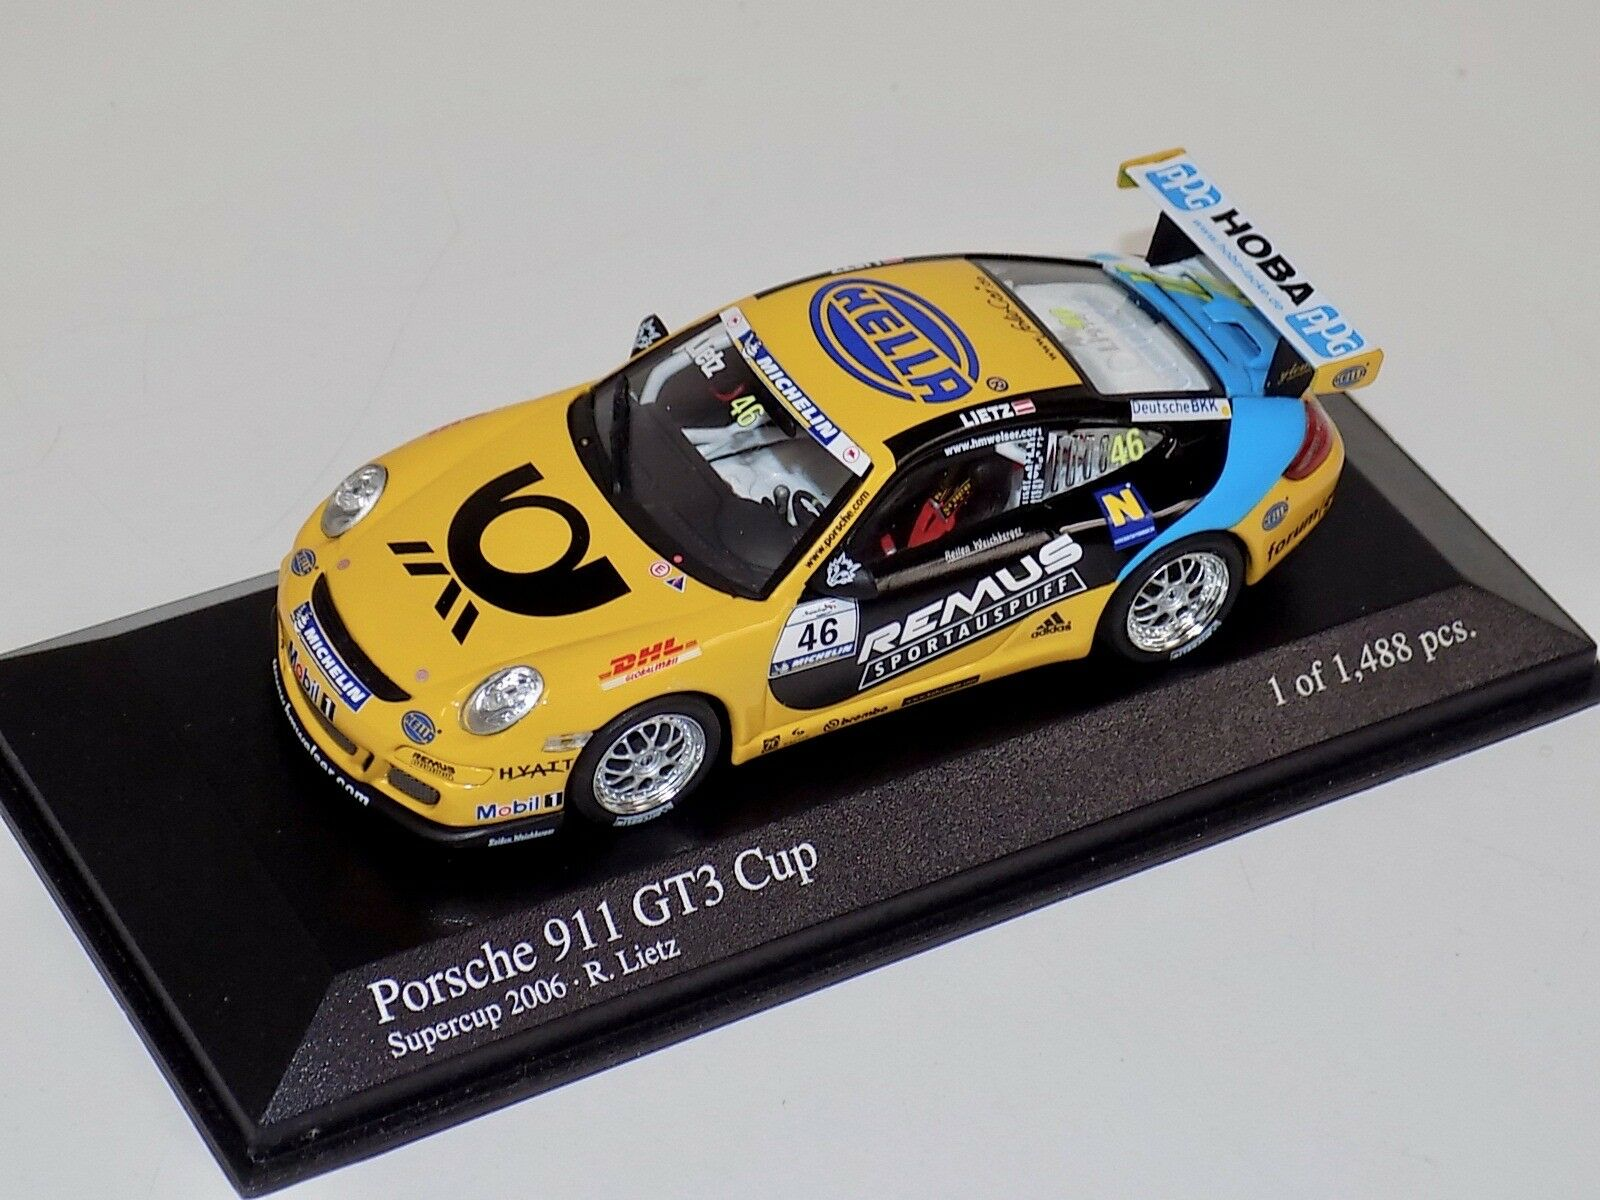 1 43 Minichamps Porsche 911 GT3 Cup 2006 Super Cup Tolimit Motorsport  car